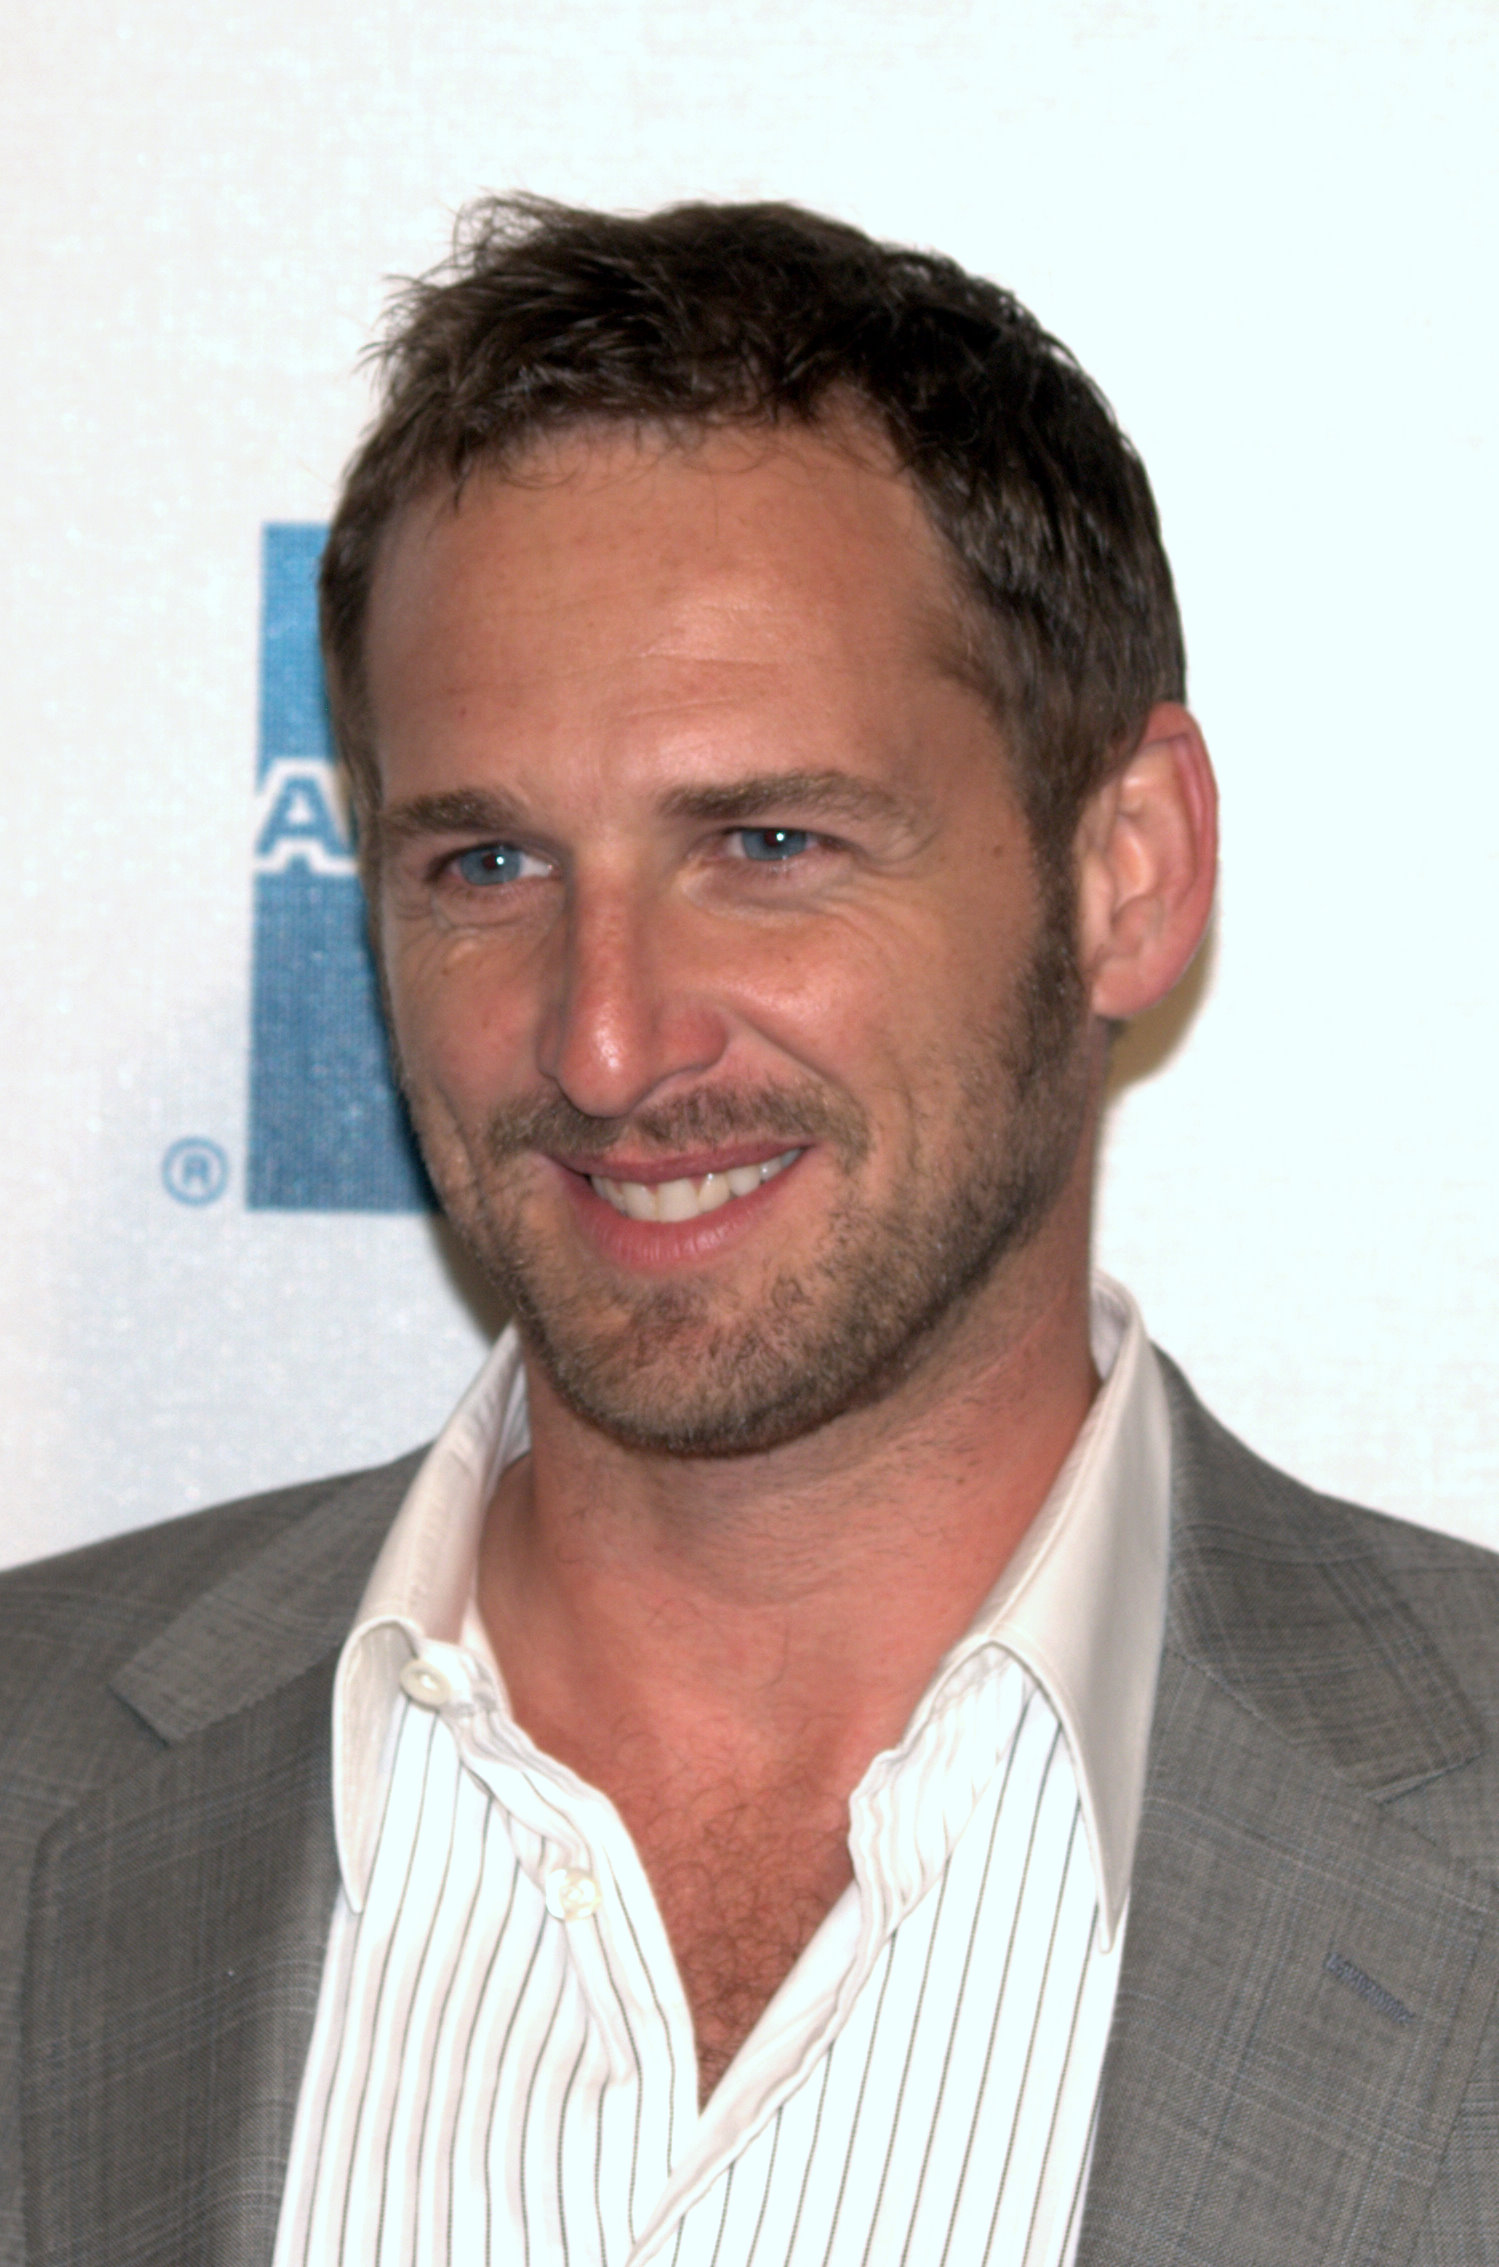 Josh Lucas earned a  million dollar salary, leaving the net worth at 16 million in 2017